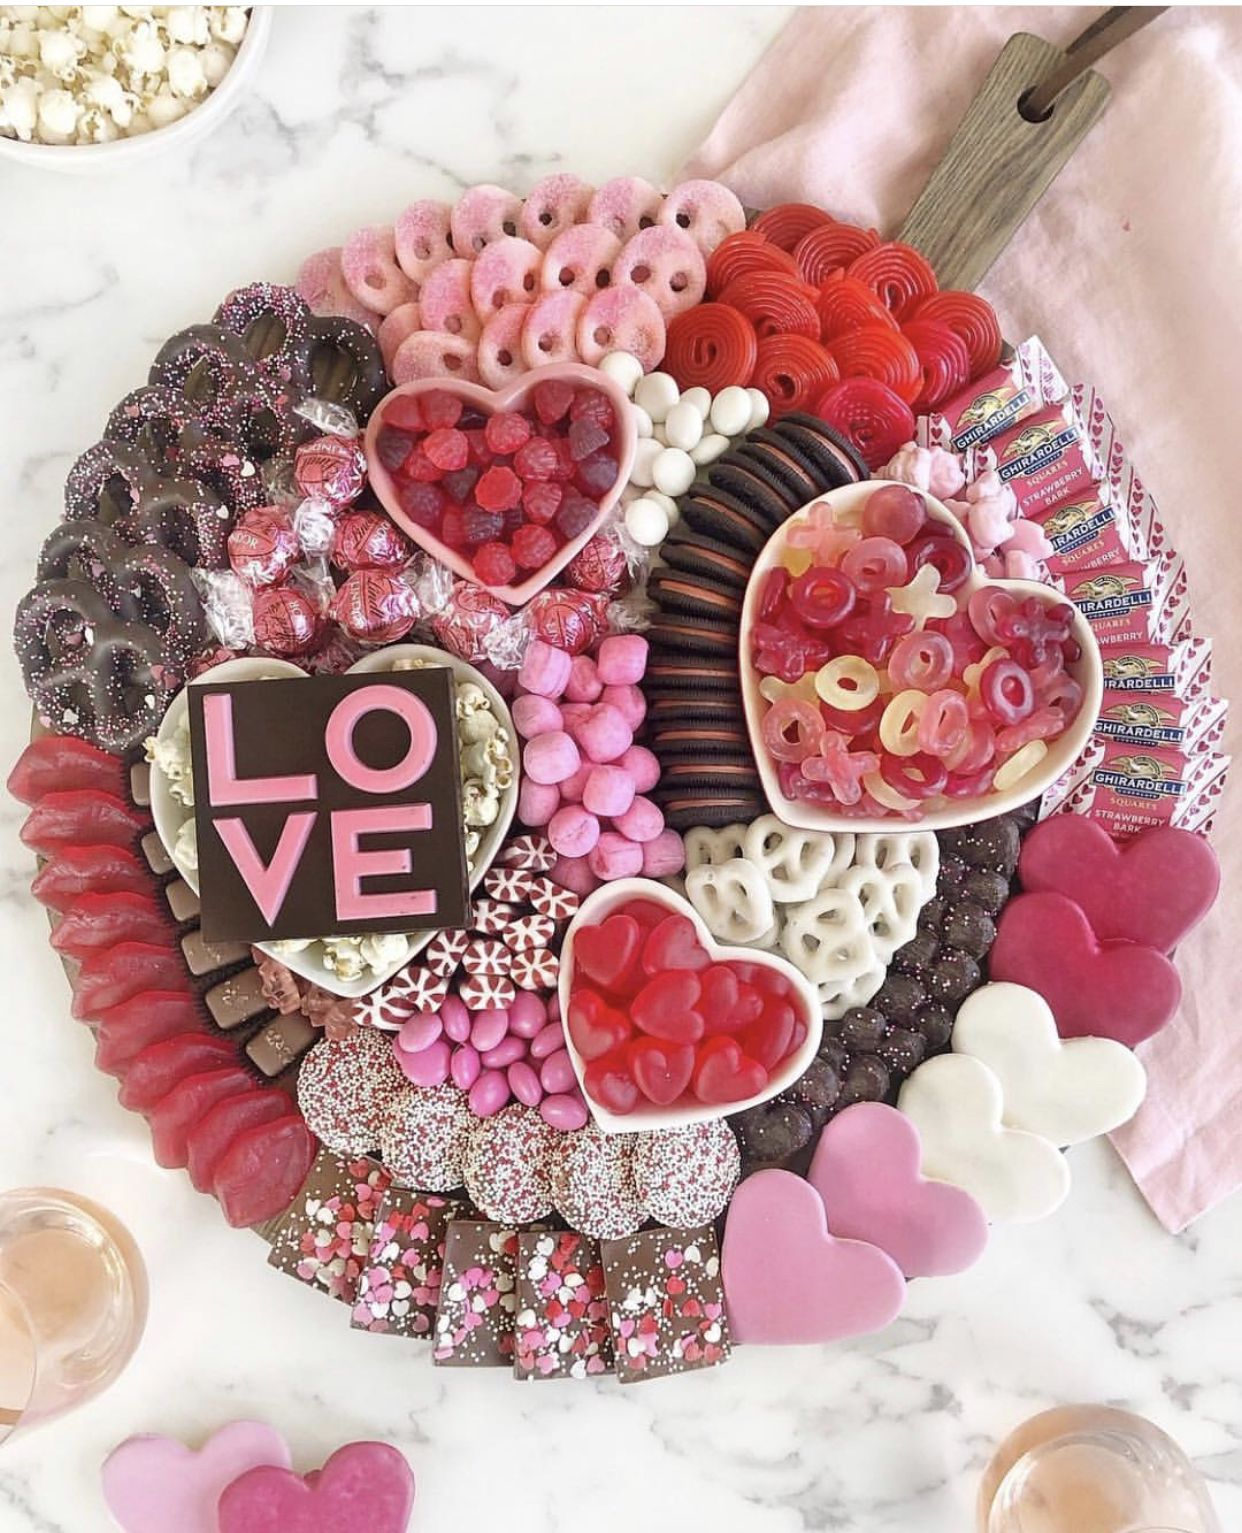 Pin by tarah james on BE MINE | Valentines party food, Valentines day desserts, Valentines day food